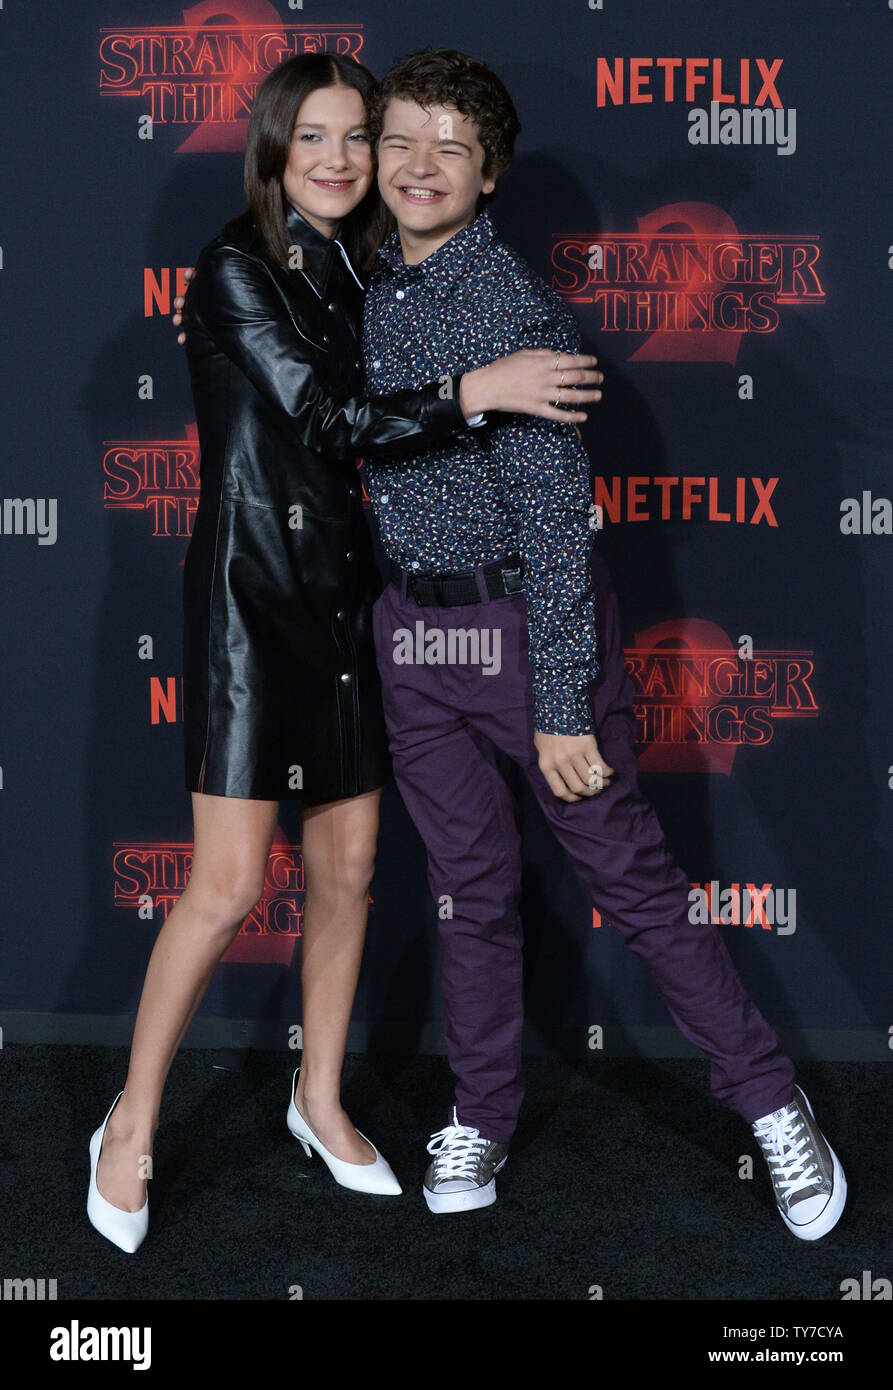 Cast Members Millie Bobby Brown And Gaten Matarazzo Attend The Premiere Of Netflix S Stranger Things Season 2 At The Regency Bruin Theatre In Los Angeles On October 26 2017 Storyline When A